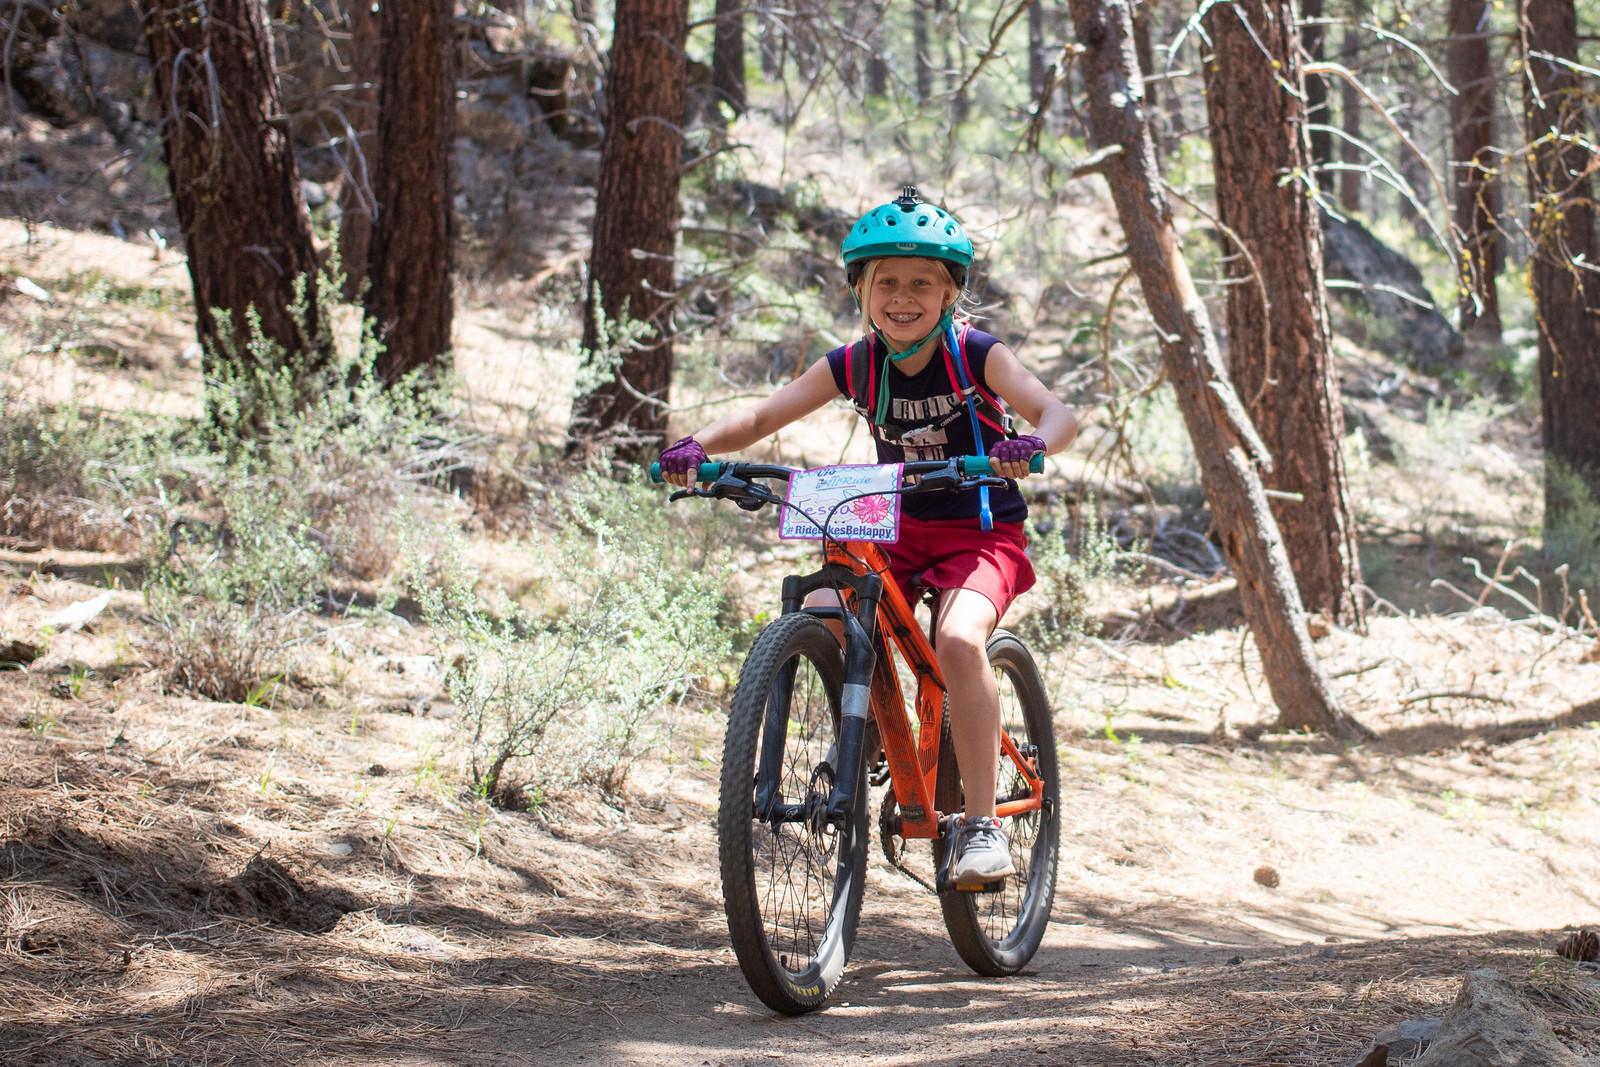 Witnessing girls thrive because of confidence gained through mountain biking is priceless